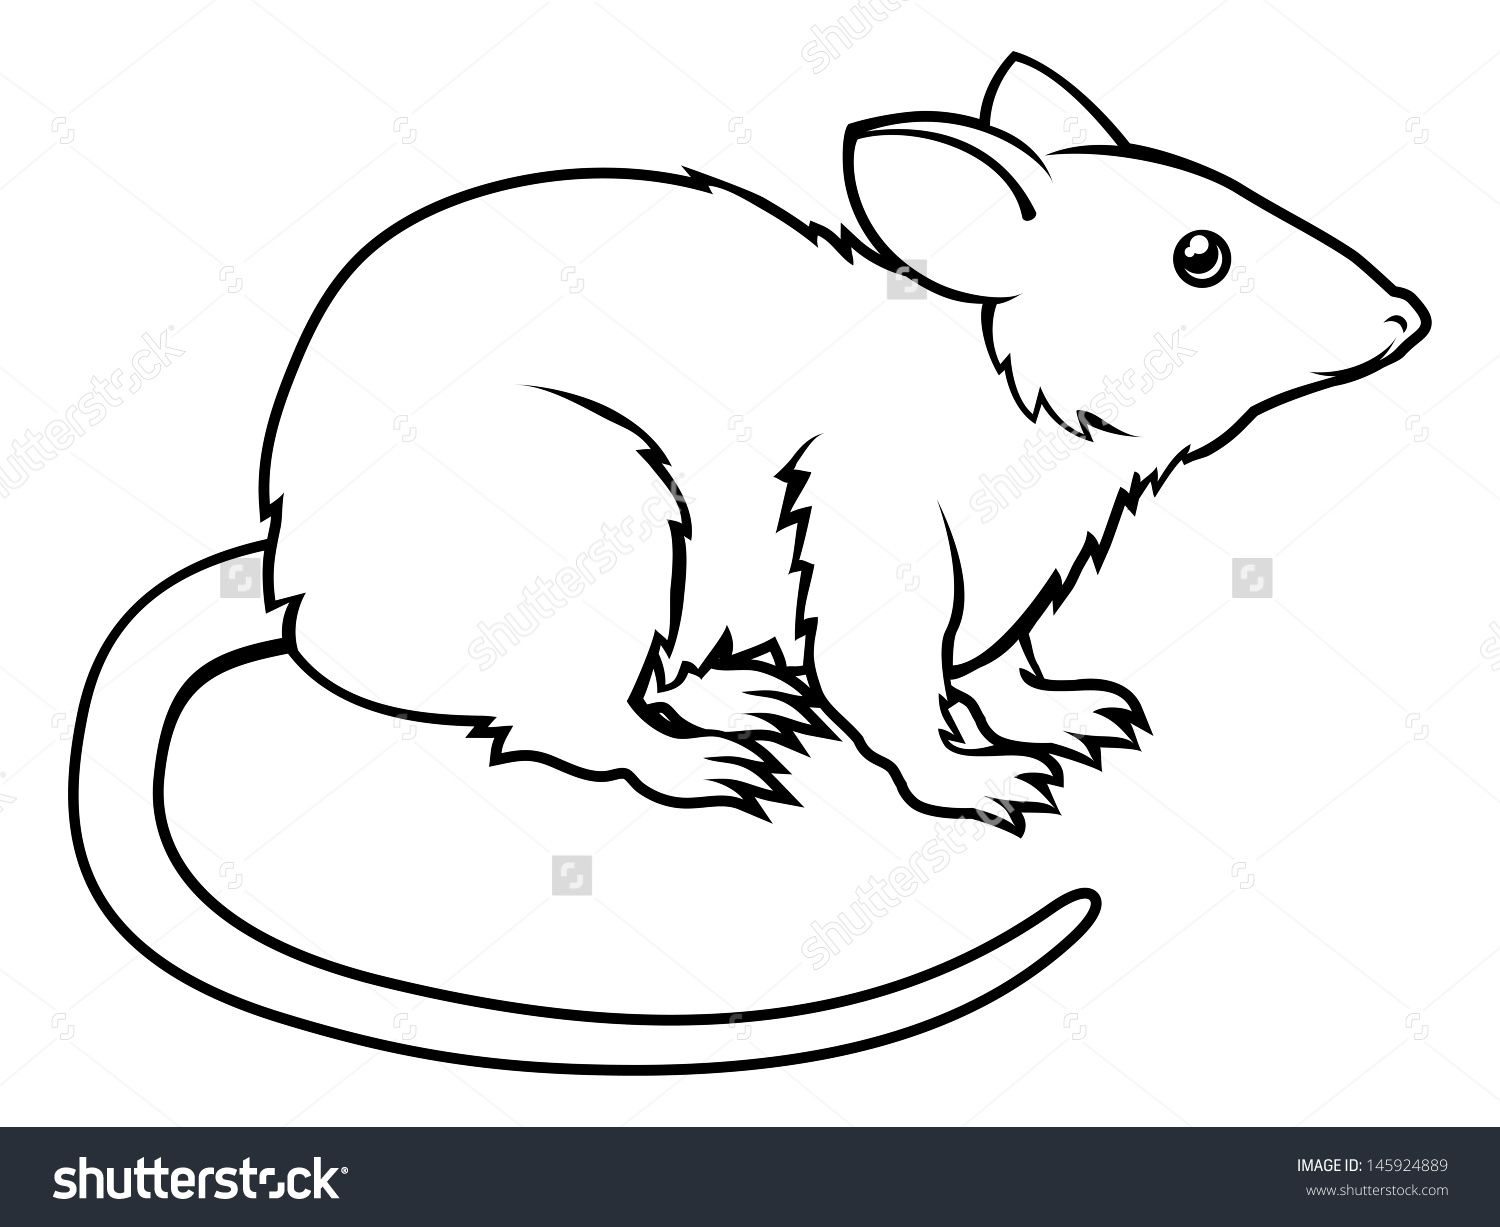 Of A Stylised Rat Perhaps Tattoo  145924889